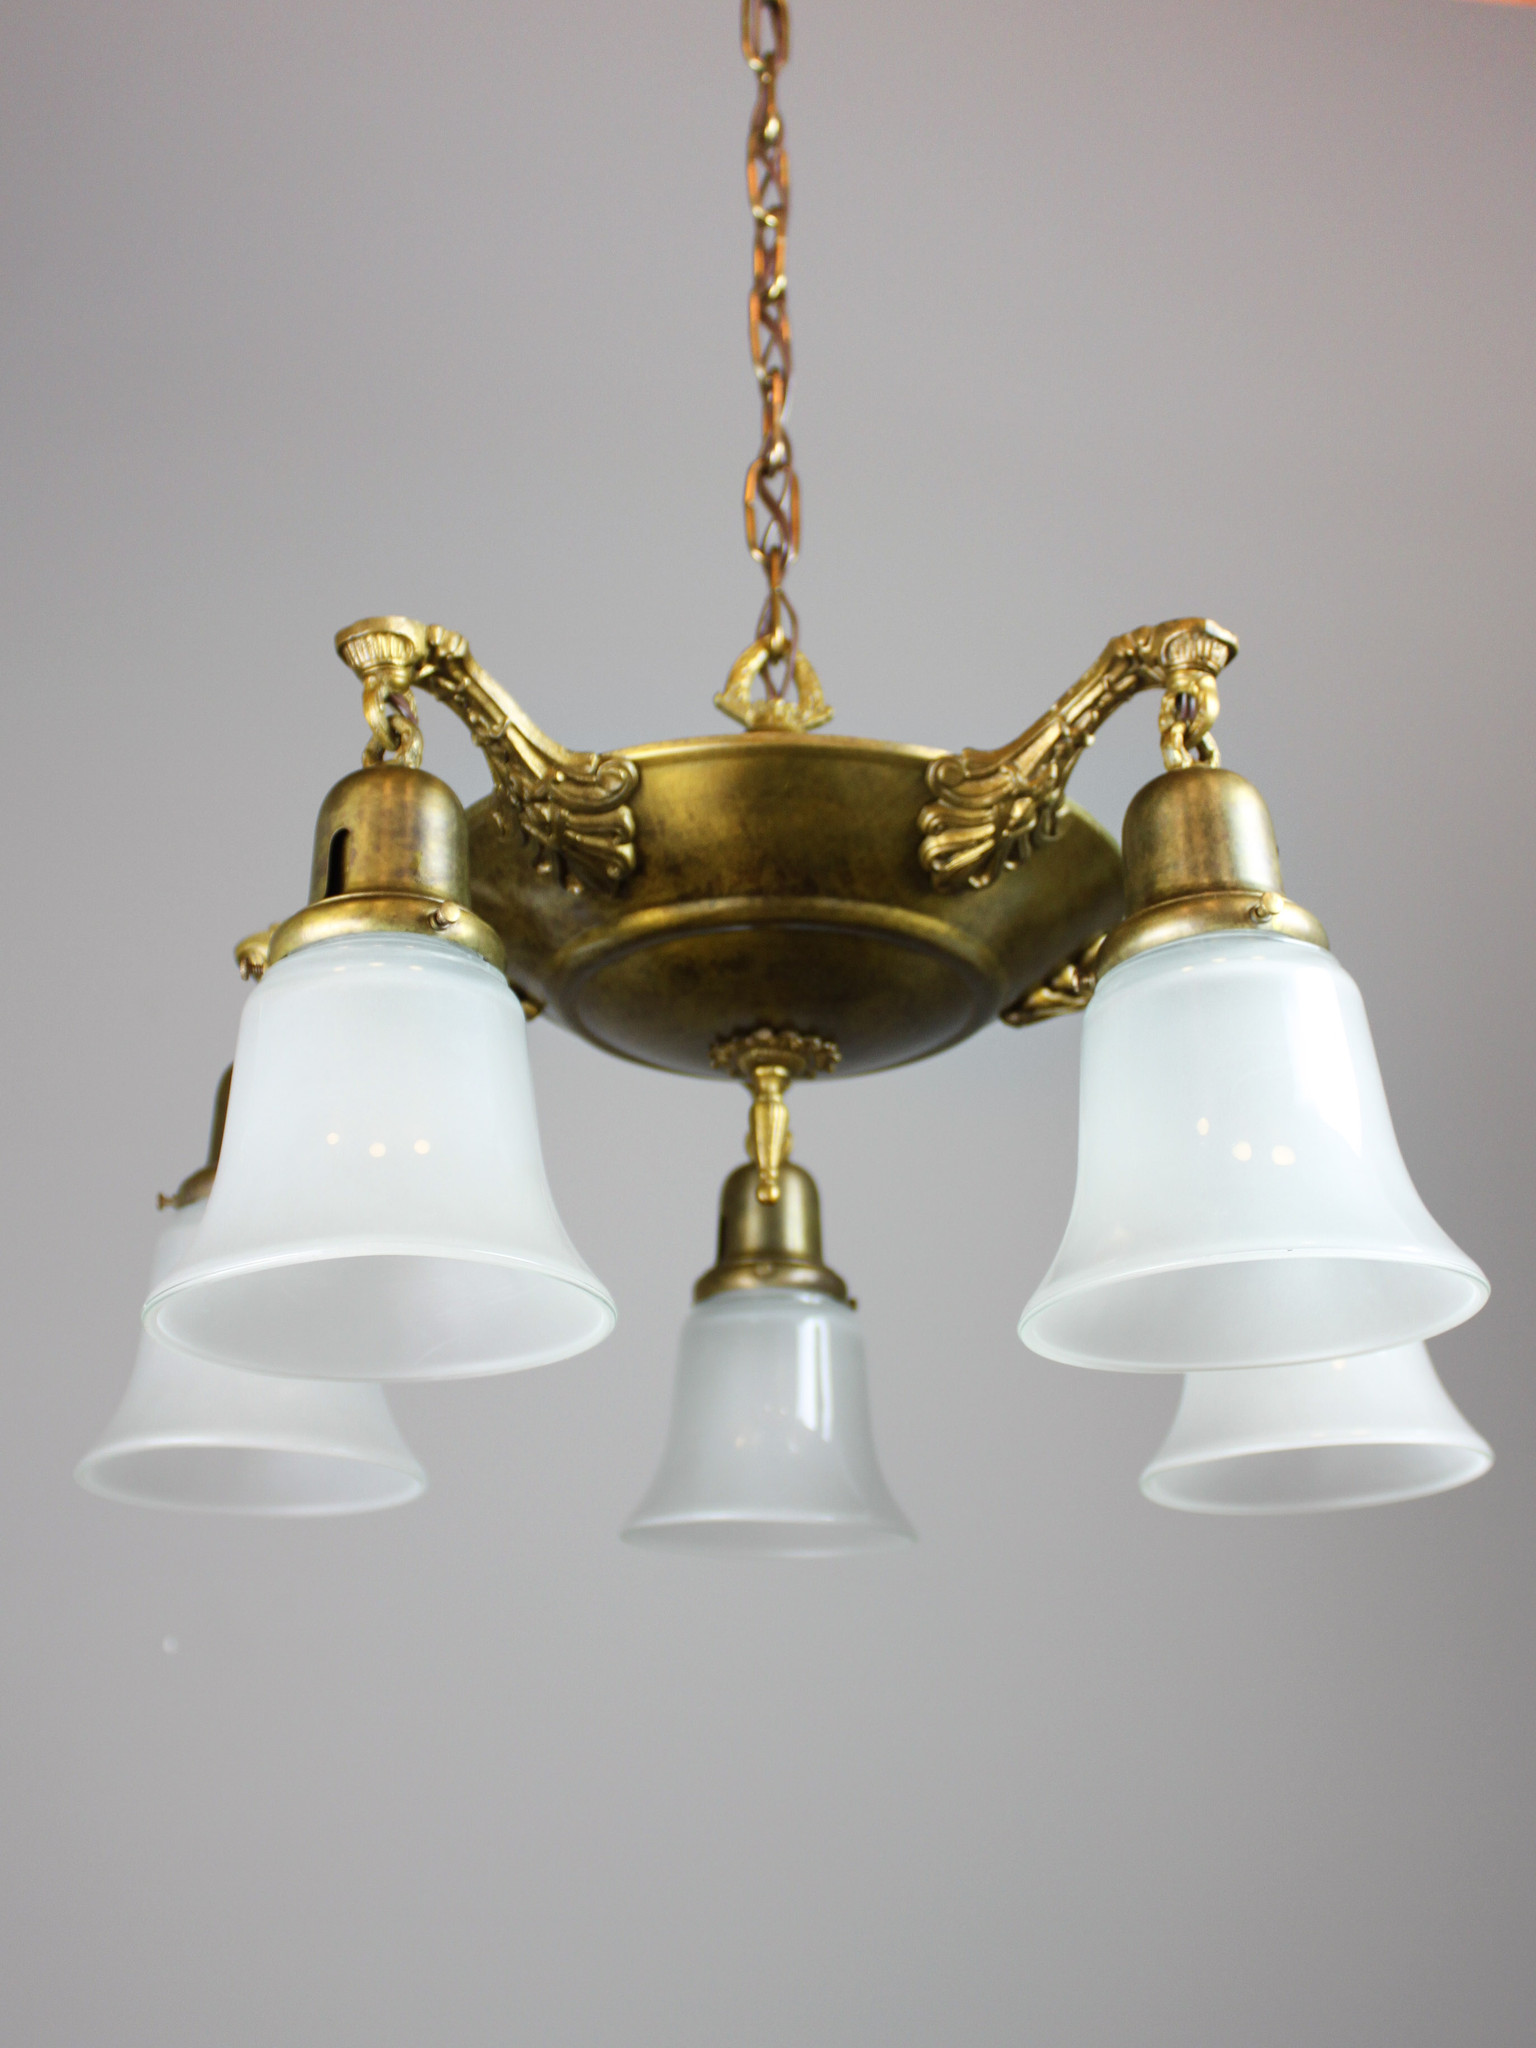 Antique Pan Light Fixture 5 Light